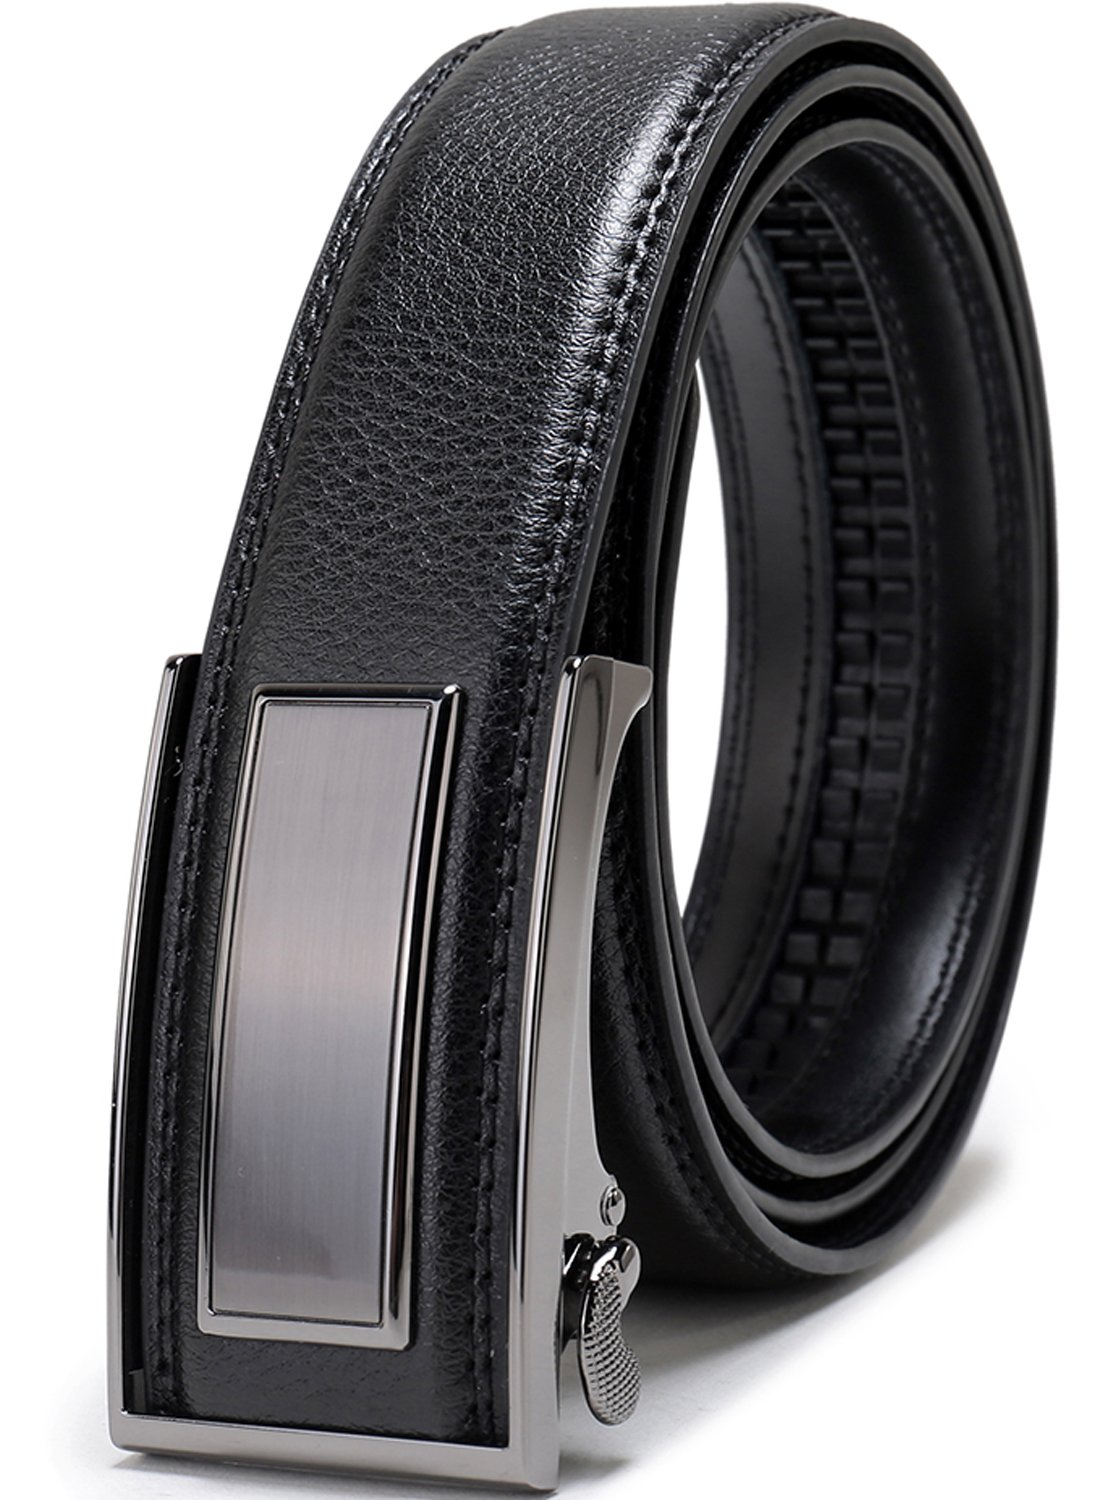 Beltox Fine Men's Dress Leather Ratchet Belt with Nickel-free Automatic Buckle (36-38, black gunmental)